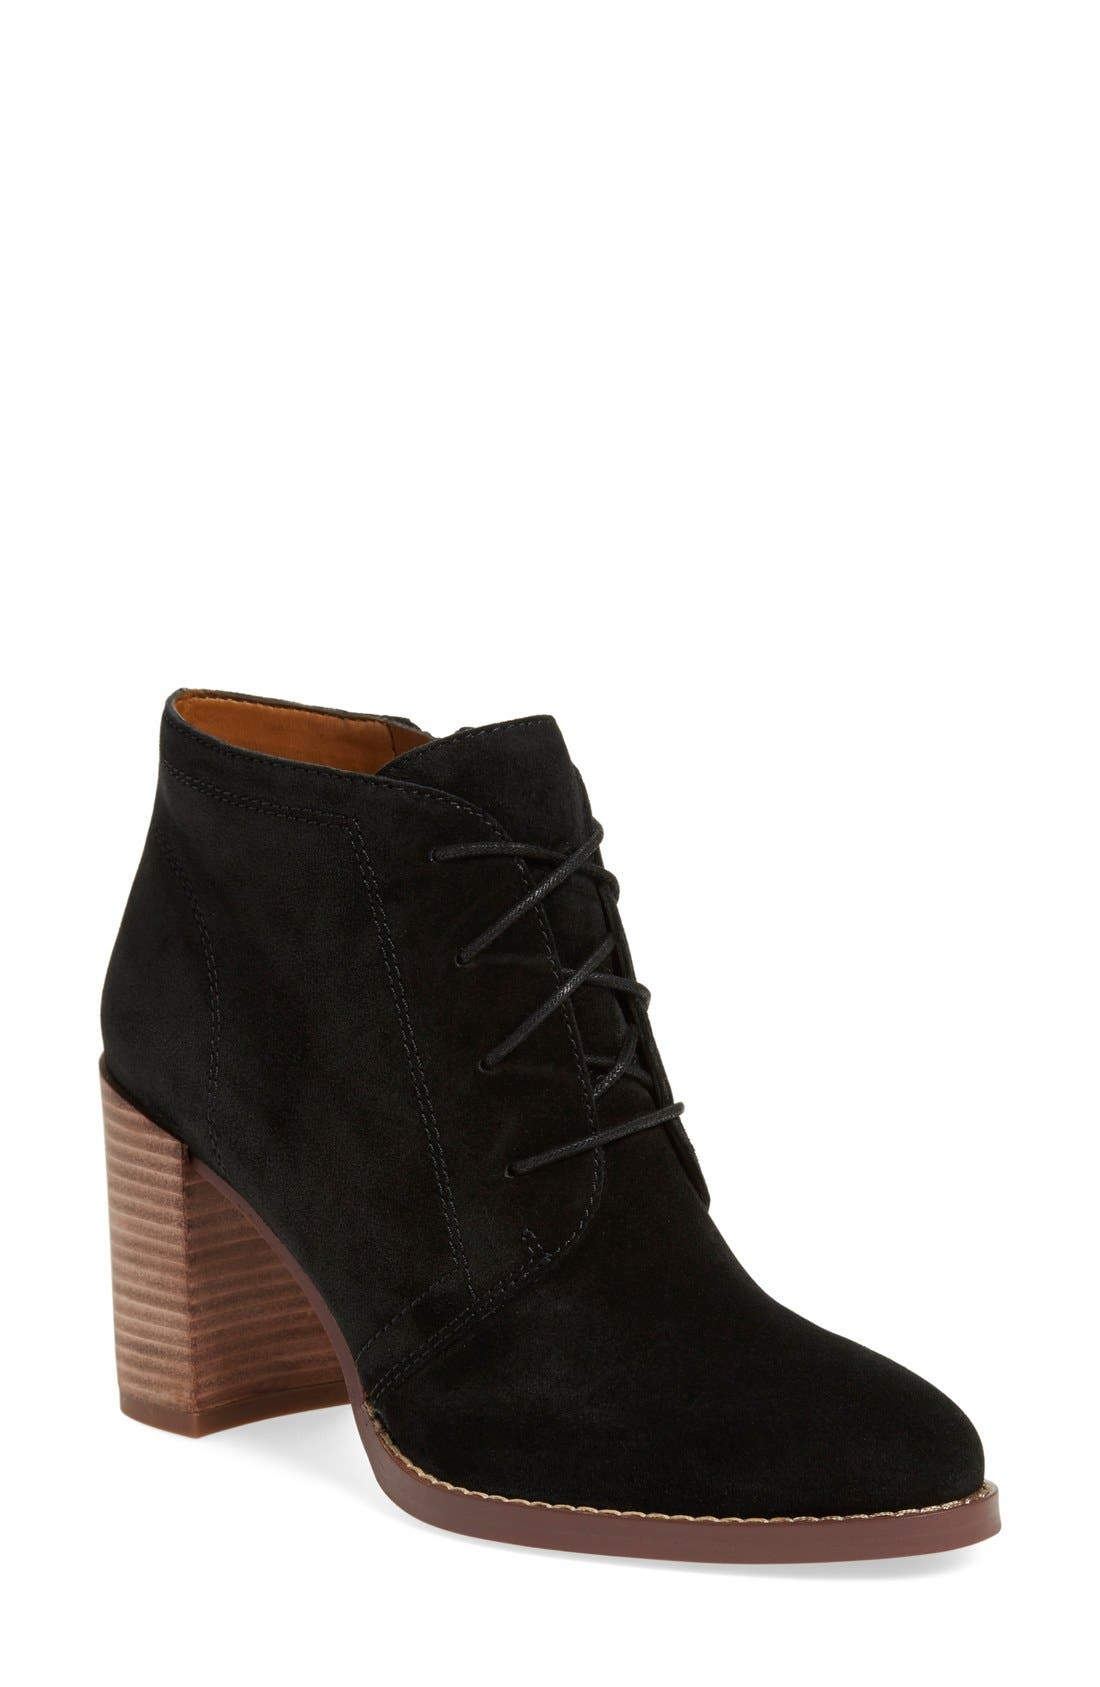 'Omani' Block Heel Bootie,                             Main thumbnail 1, color,                             Black Suede